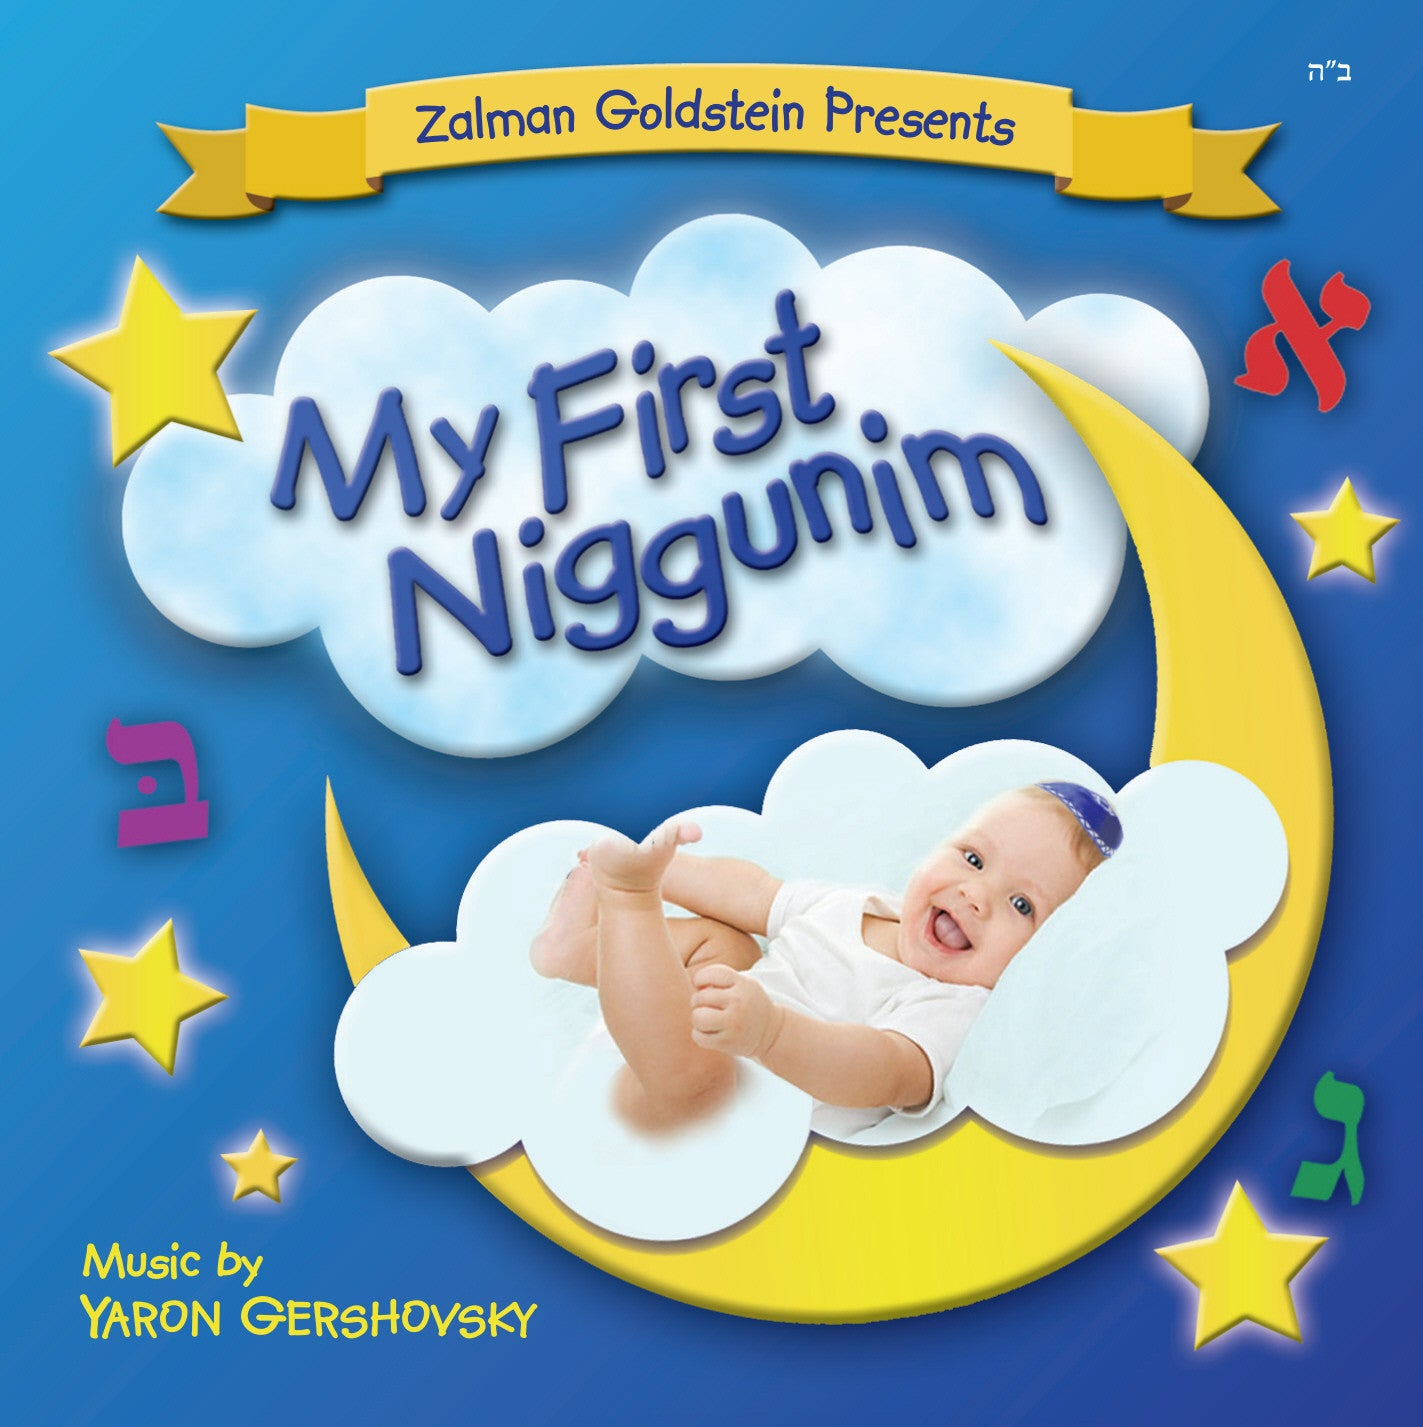 Zalman Goldstein - My First Niggnim